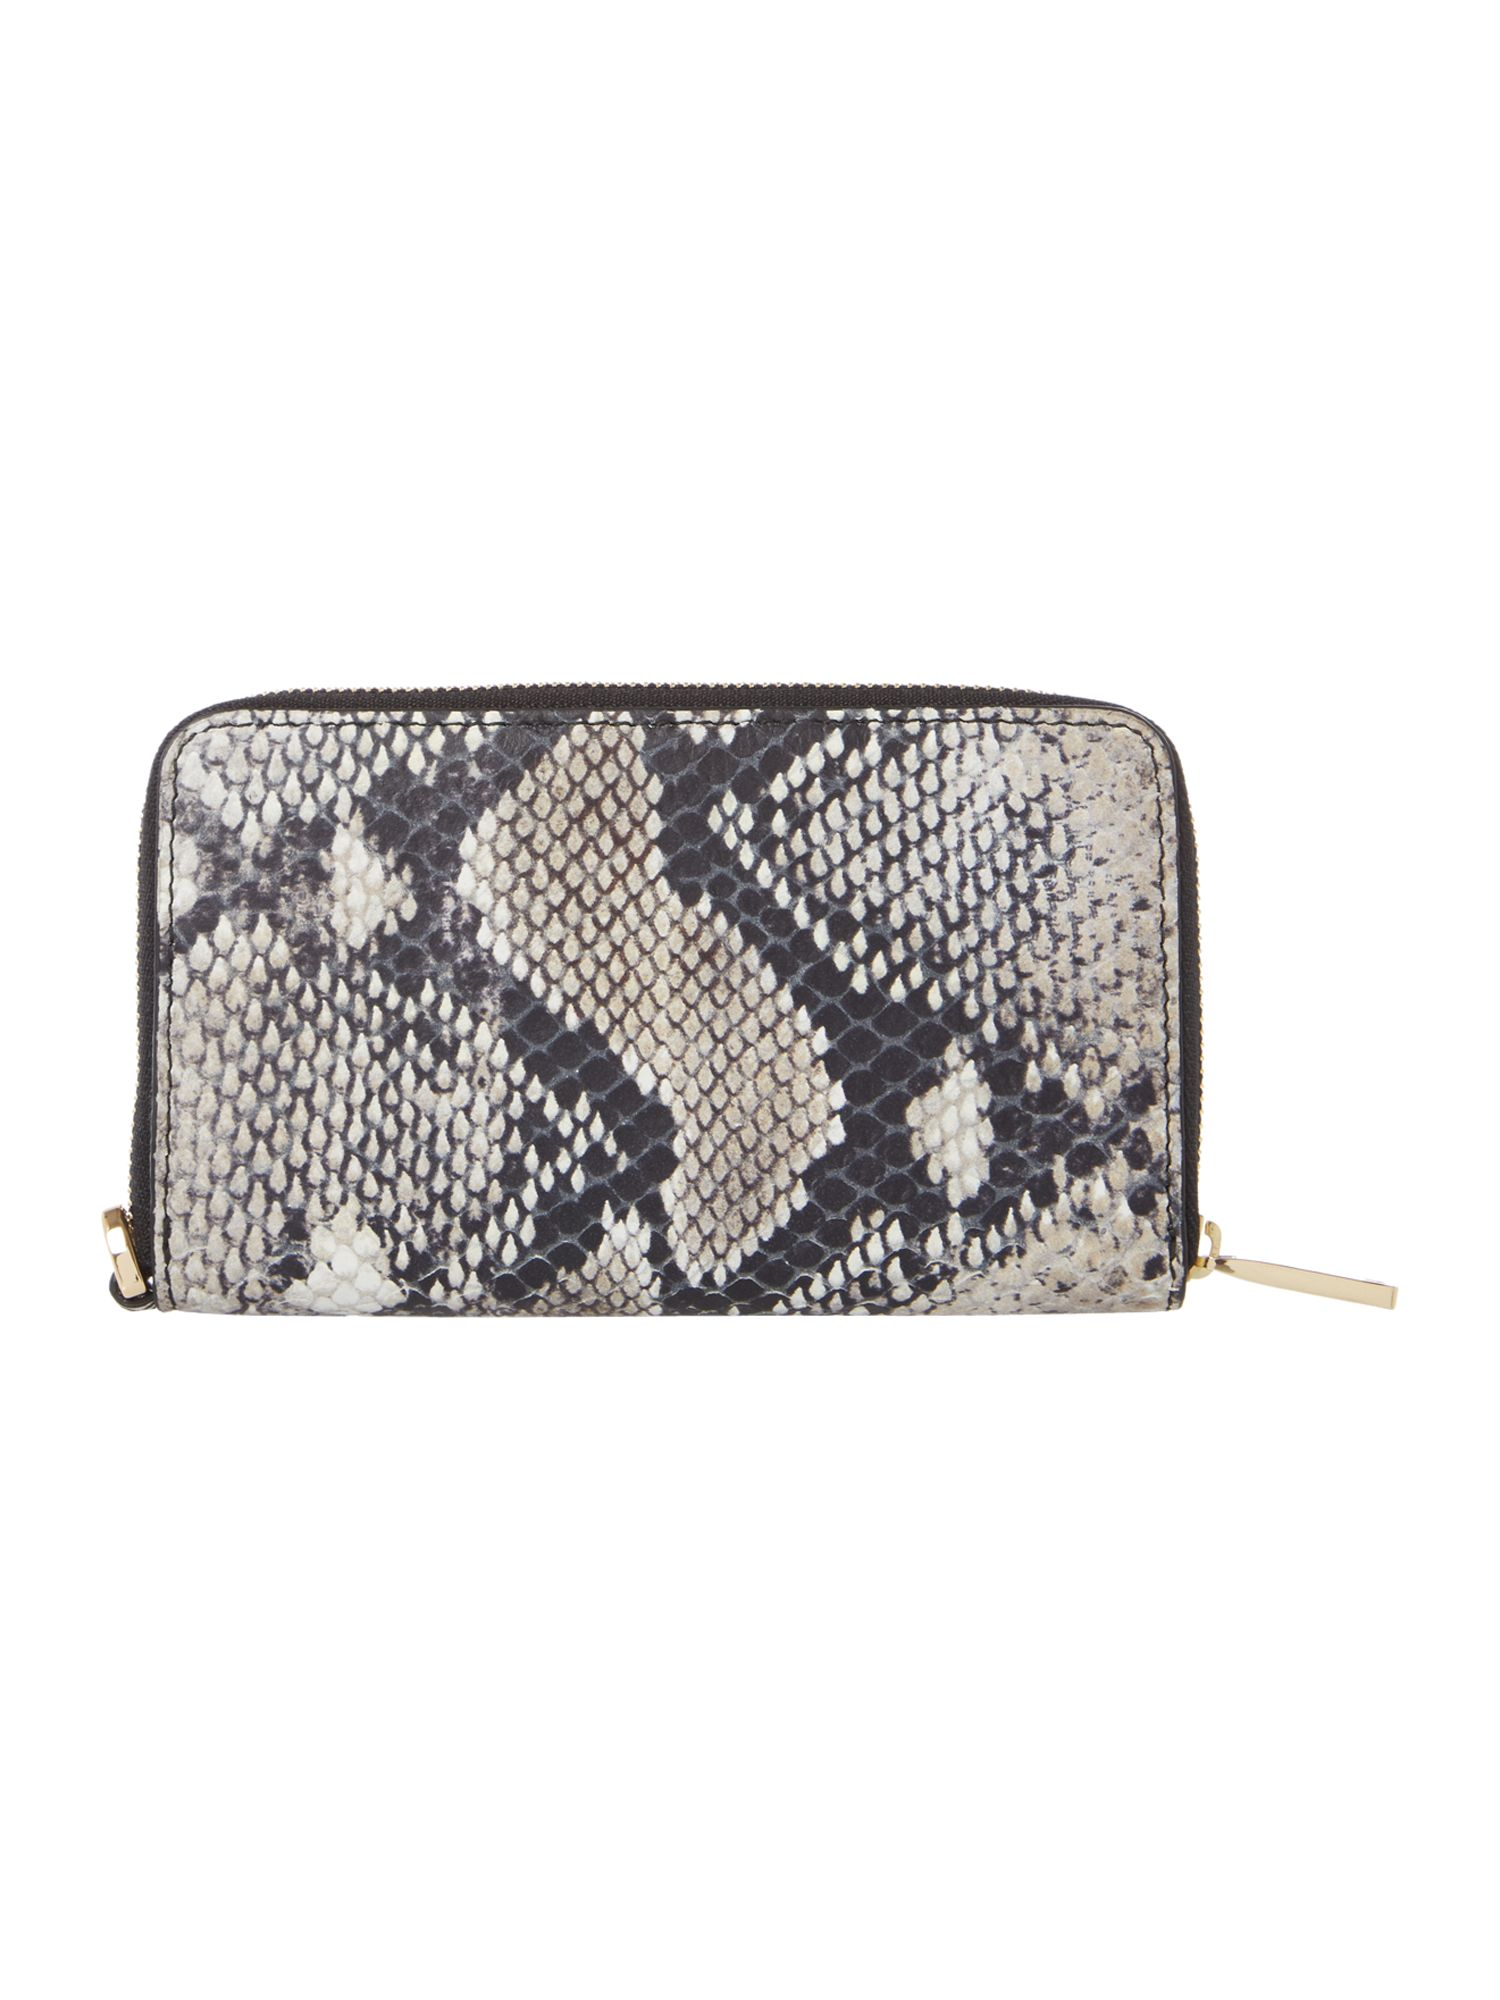 Clibi multi coloured snake zip around purse